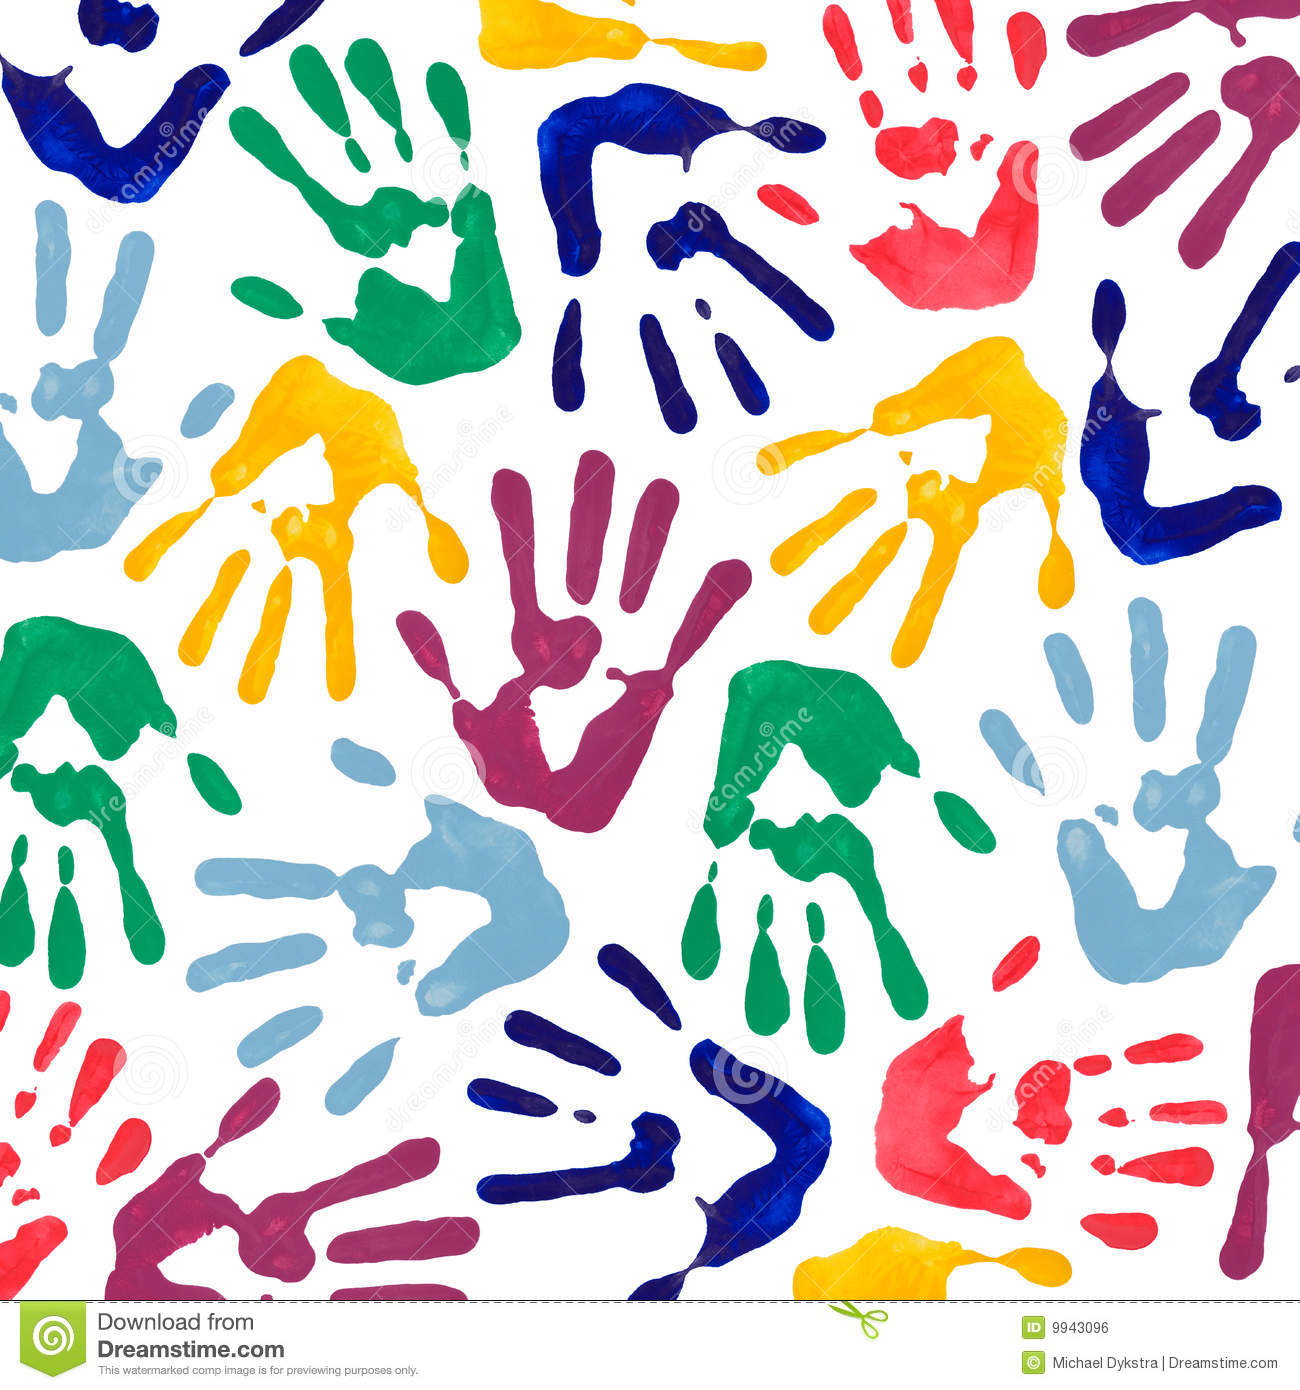 Colorful Hand Prints Wallpaper Royalty Free Stock Image Colorful Prints